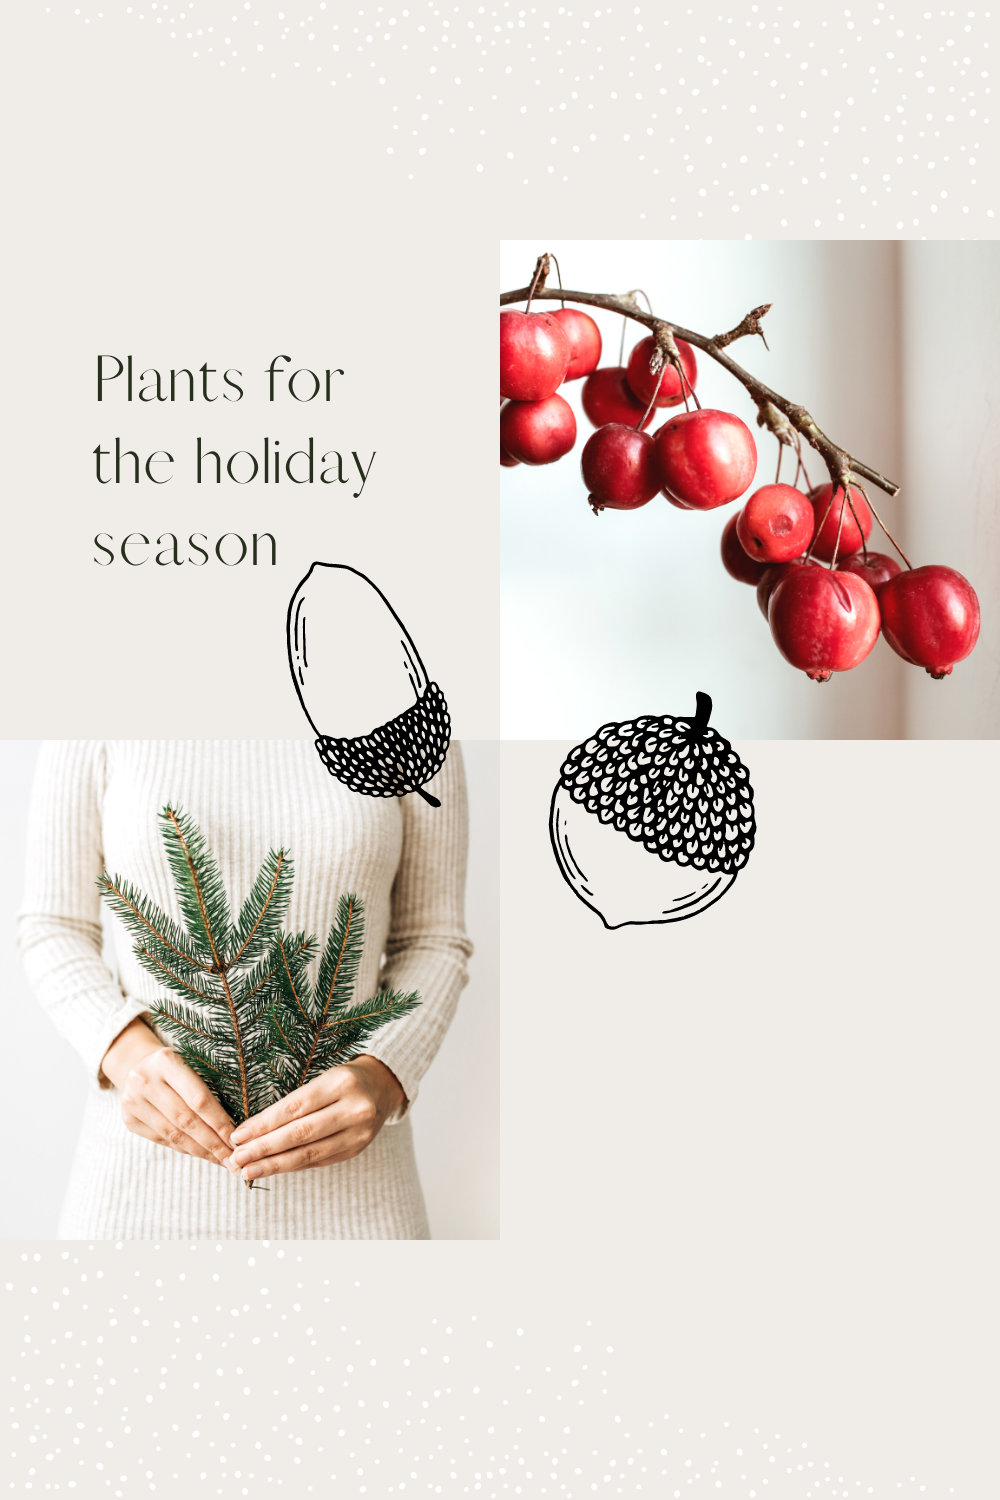 Plants for the holiday season that are perfect for Christmas decorations from red and white amaryllis, holiday cacti, poinsettia & evergreens